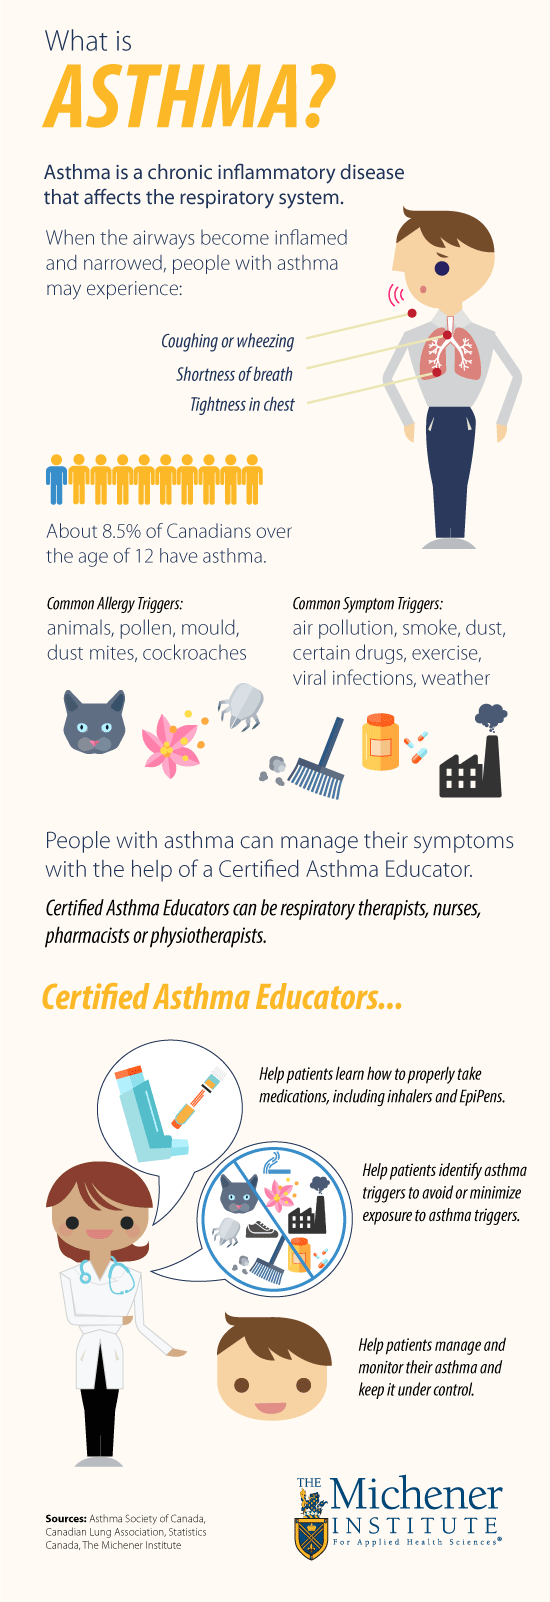 World Asthma Day - The Michener Institute